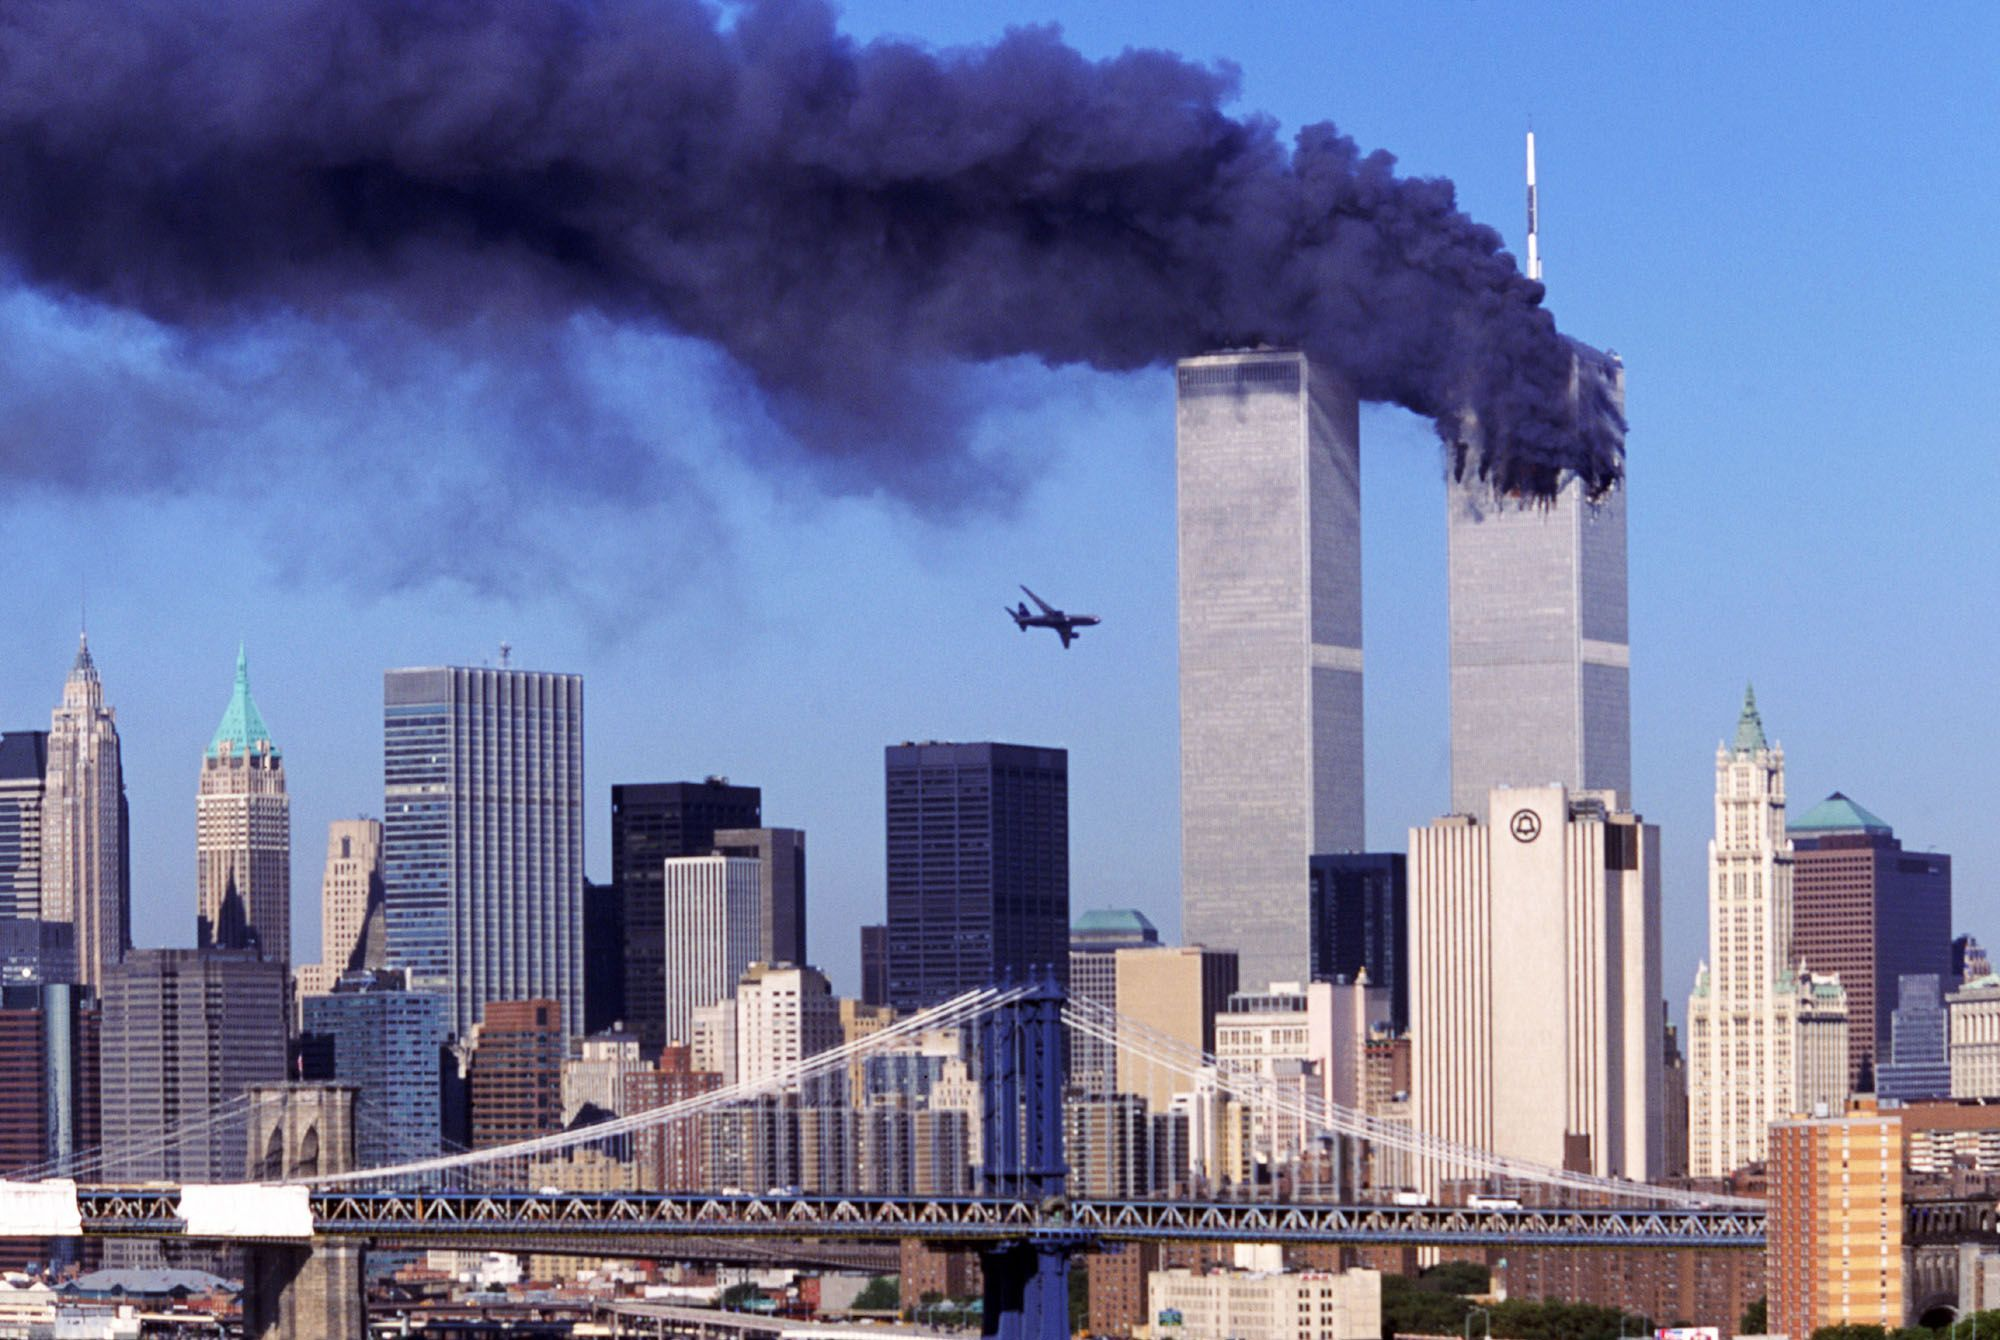 8. Many witnesses claimed to have heard unexplained explosions in the Twin Towers.